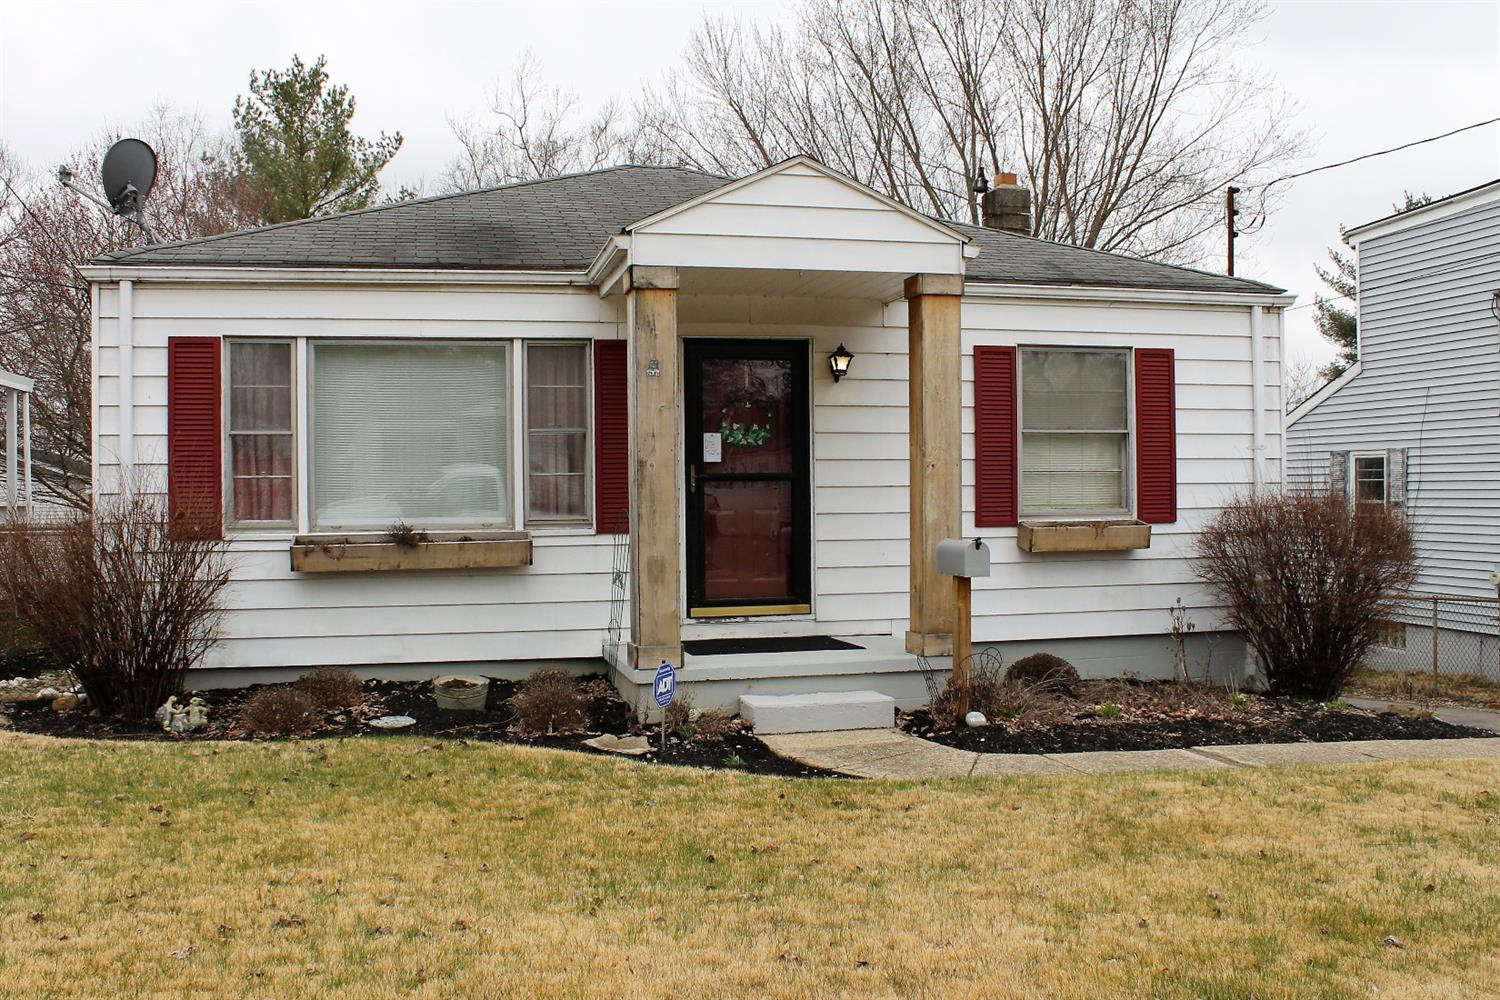 353 Sunset Dr South Lebanon Oh 45065 Listing Details